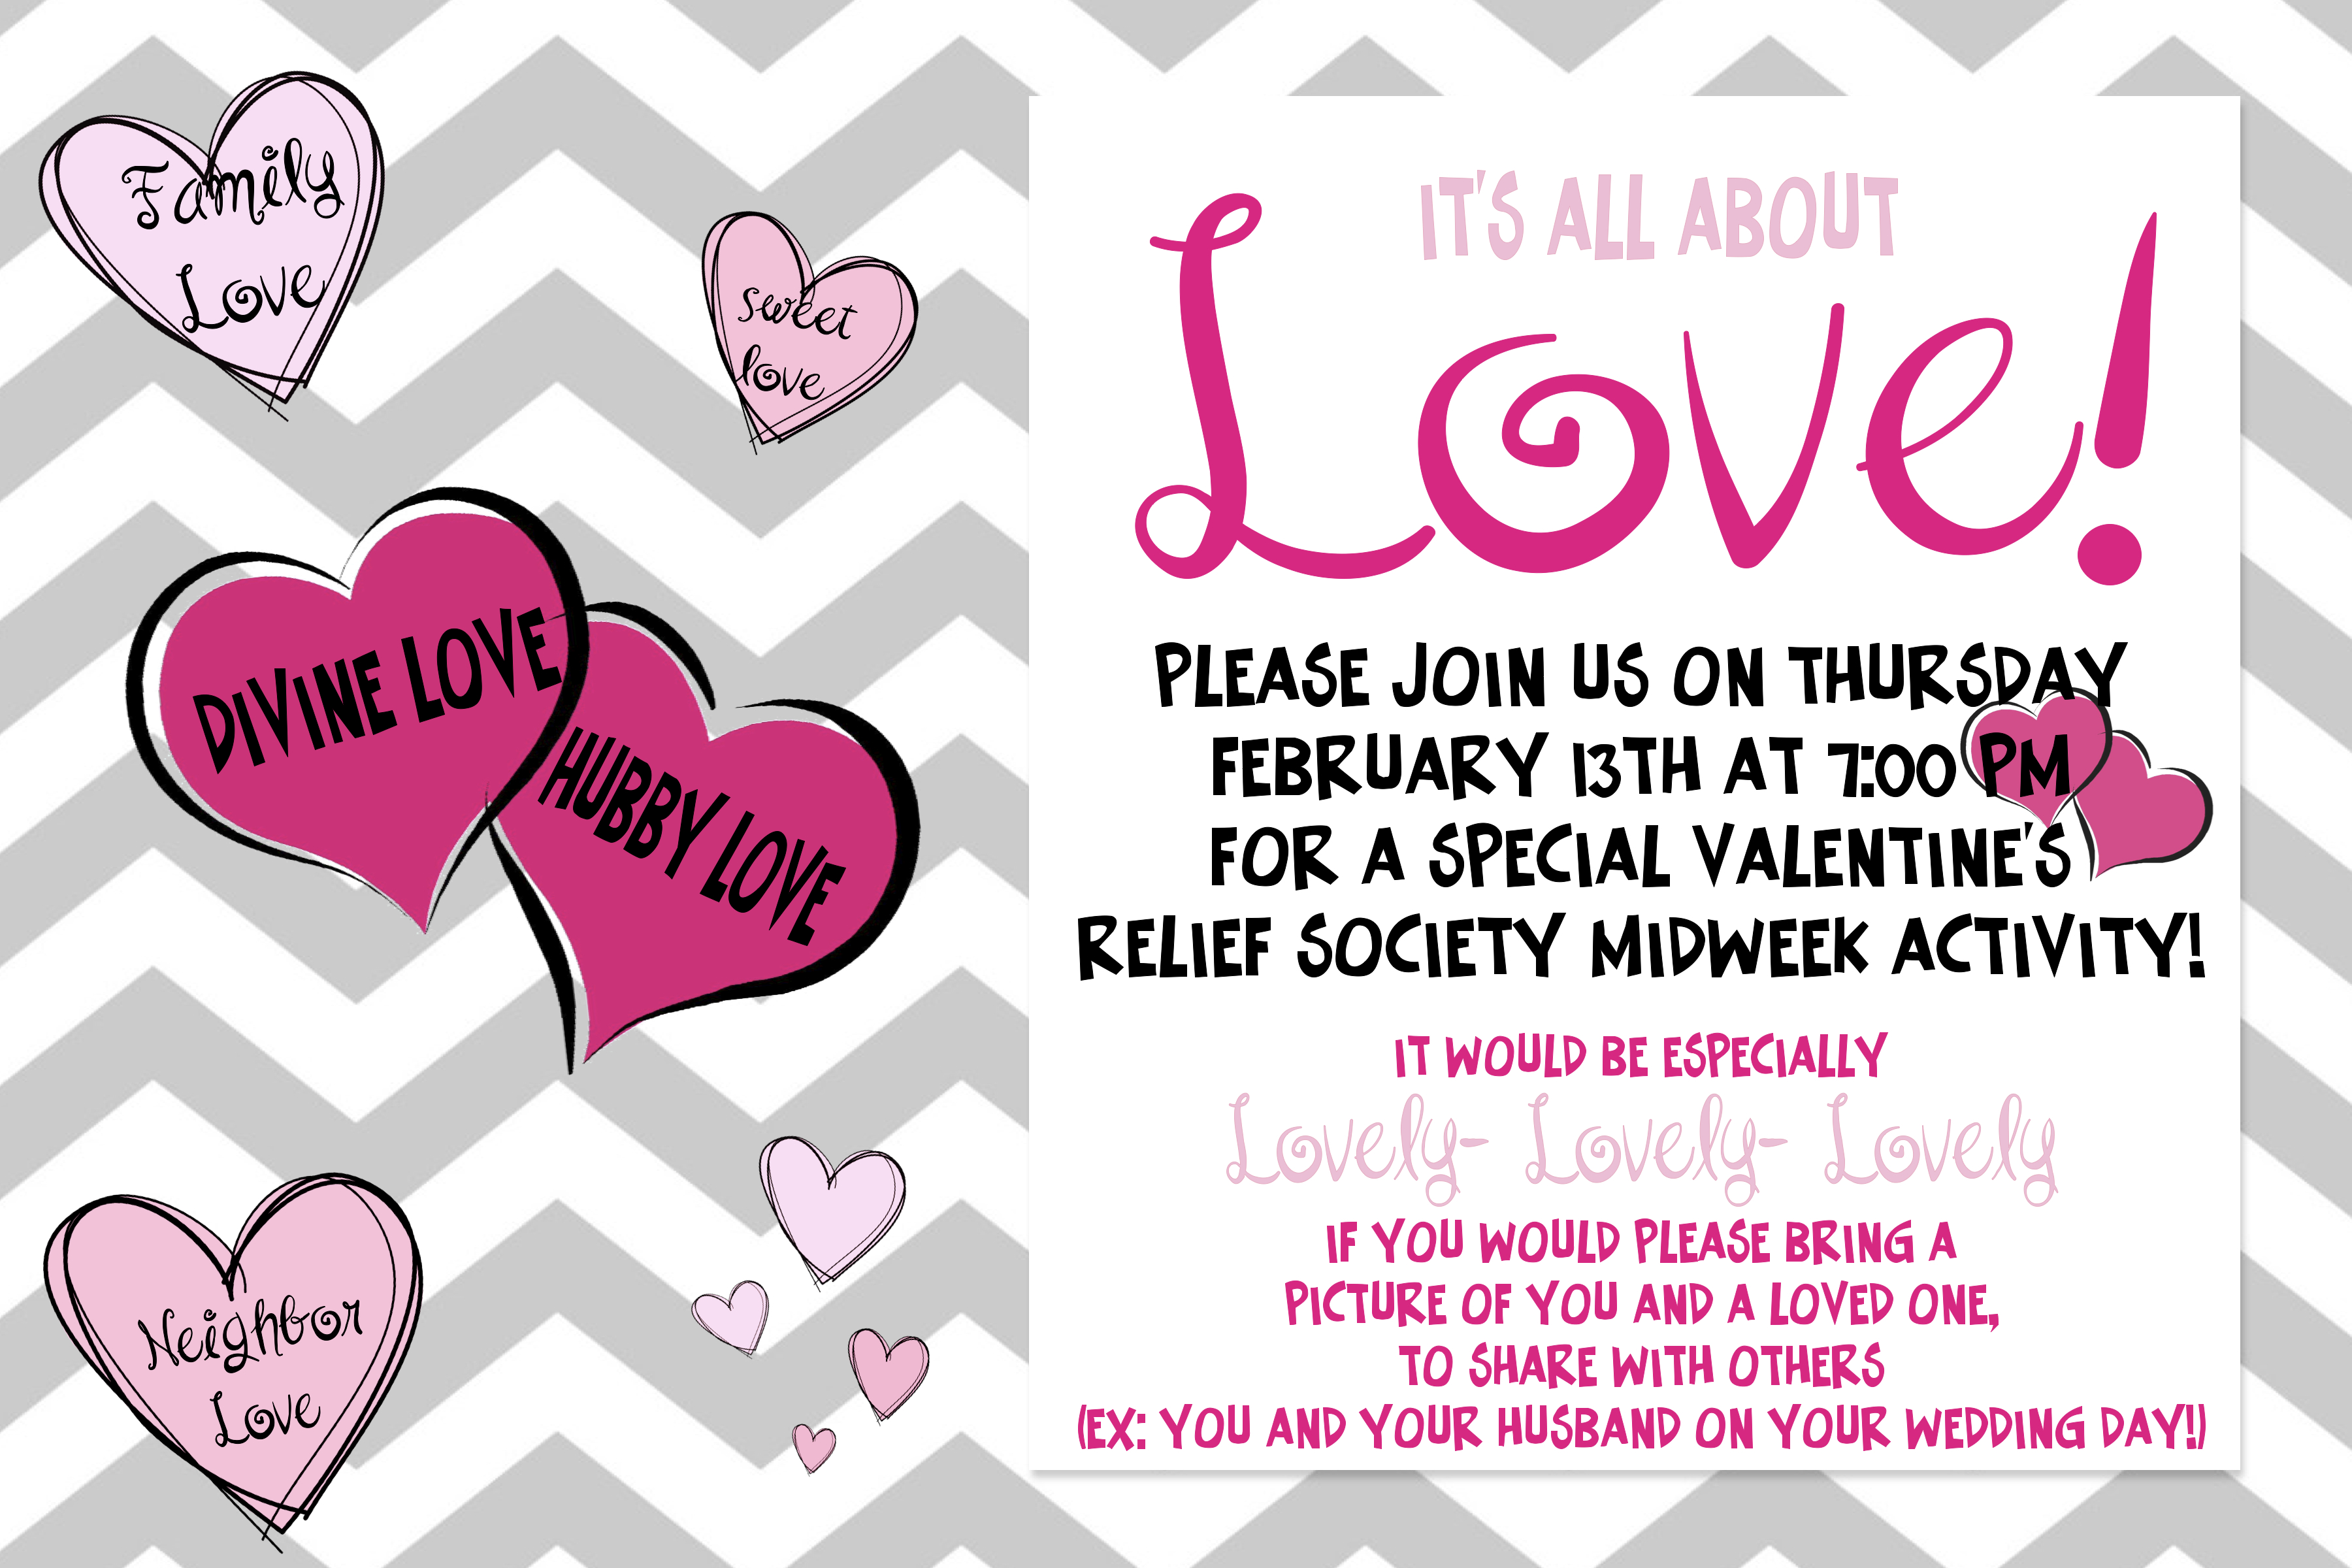 All About Love Feb Relief Society Mid Week Activity